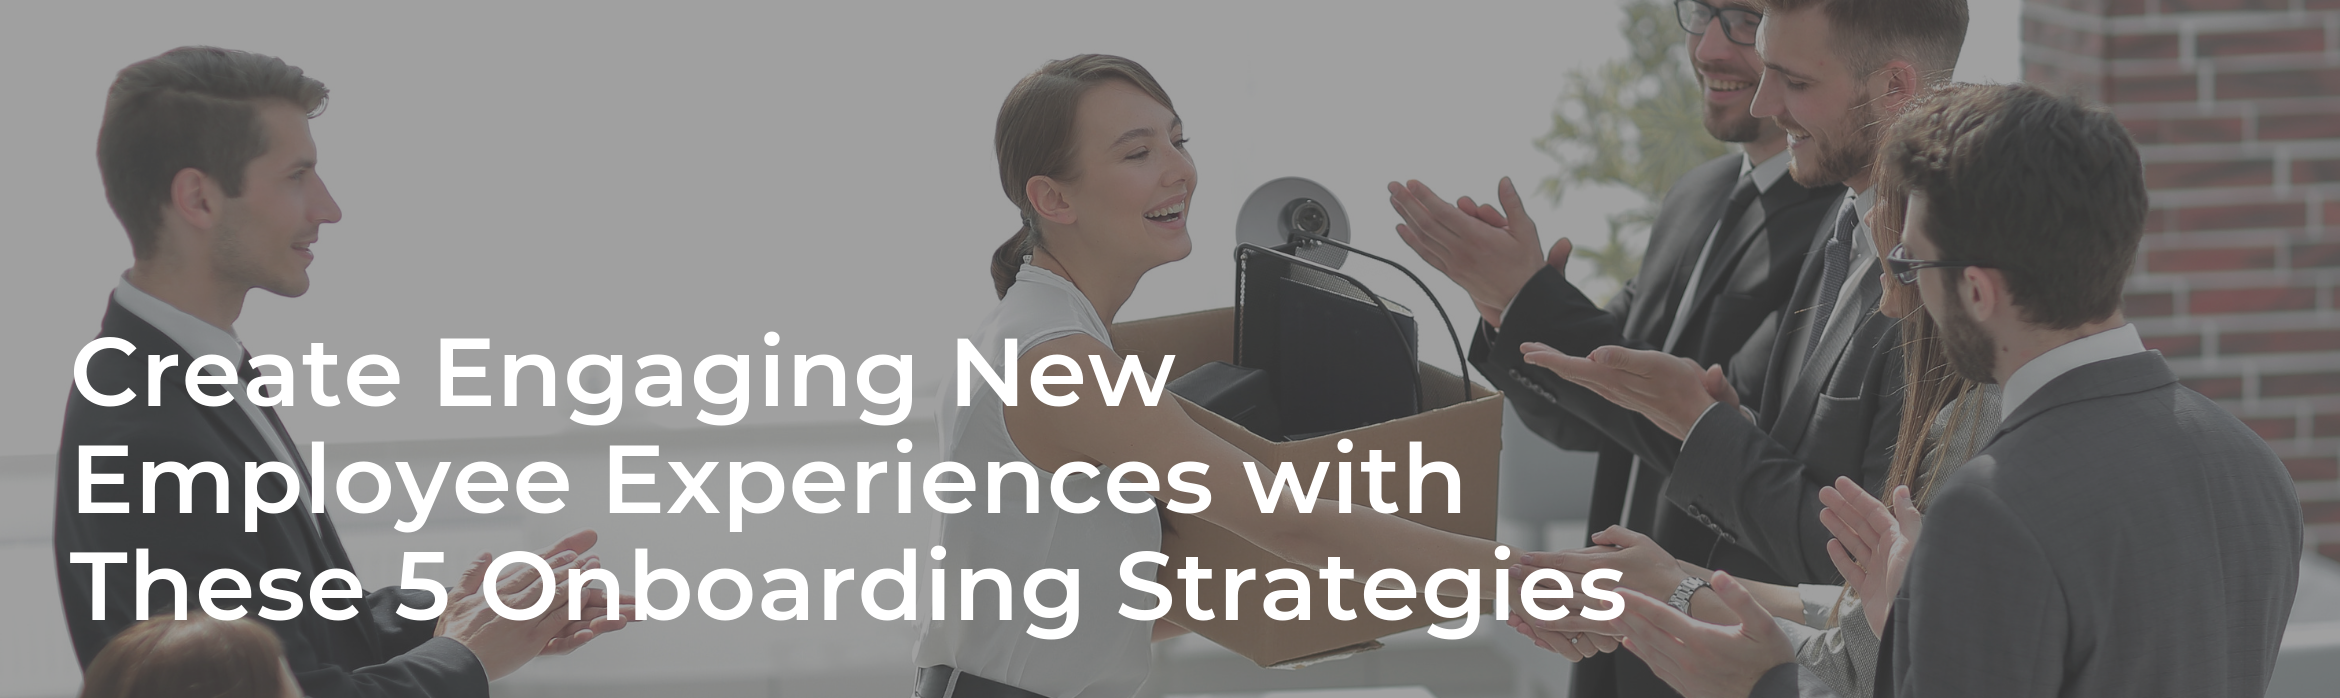 Create Engaging New Employee Experiences with These 5 Onboarding Strategies